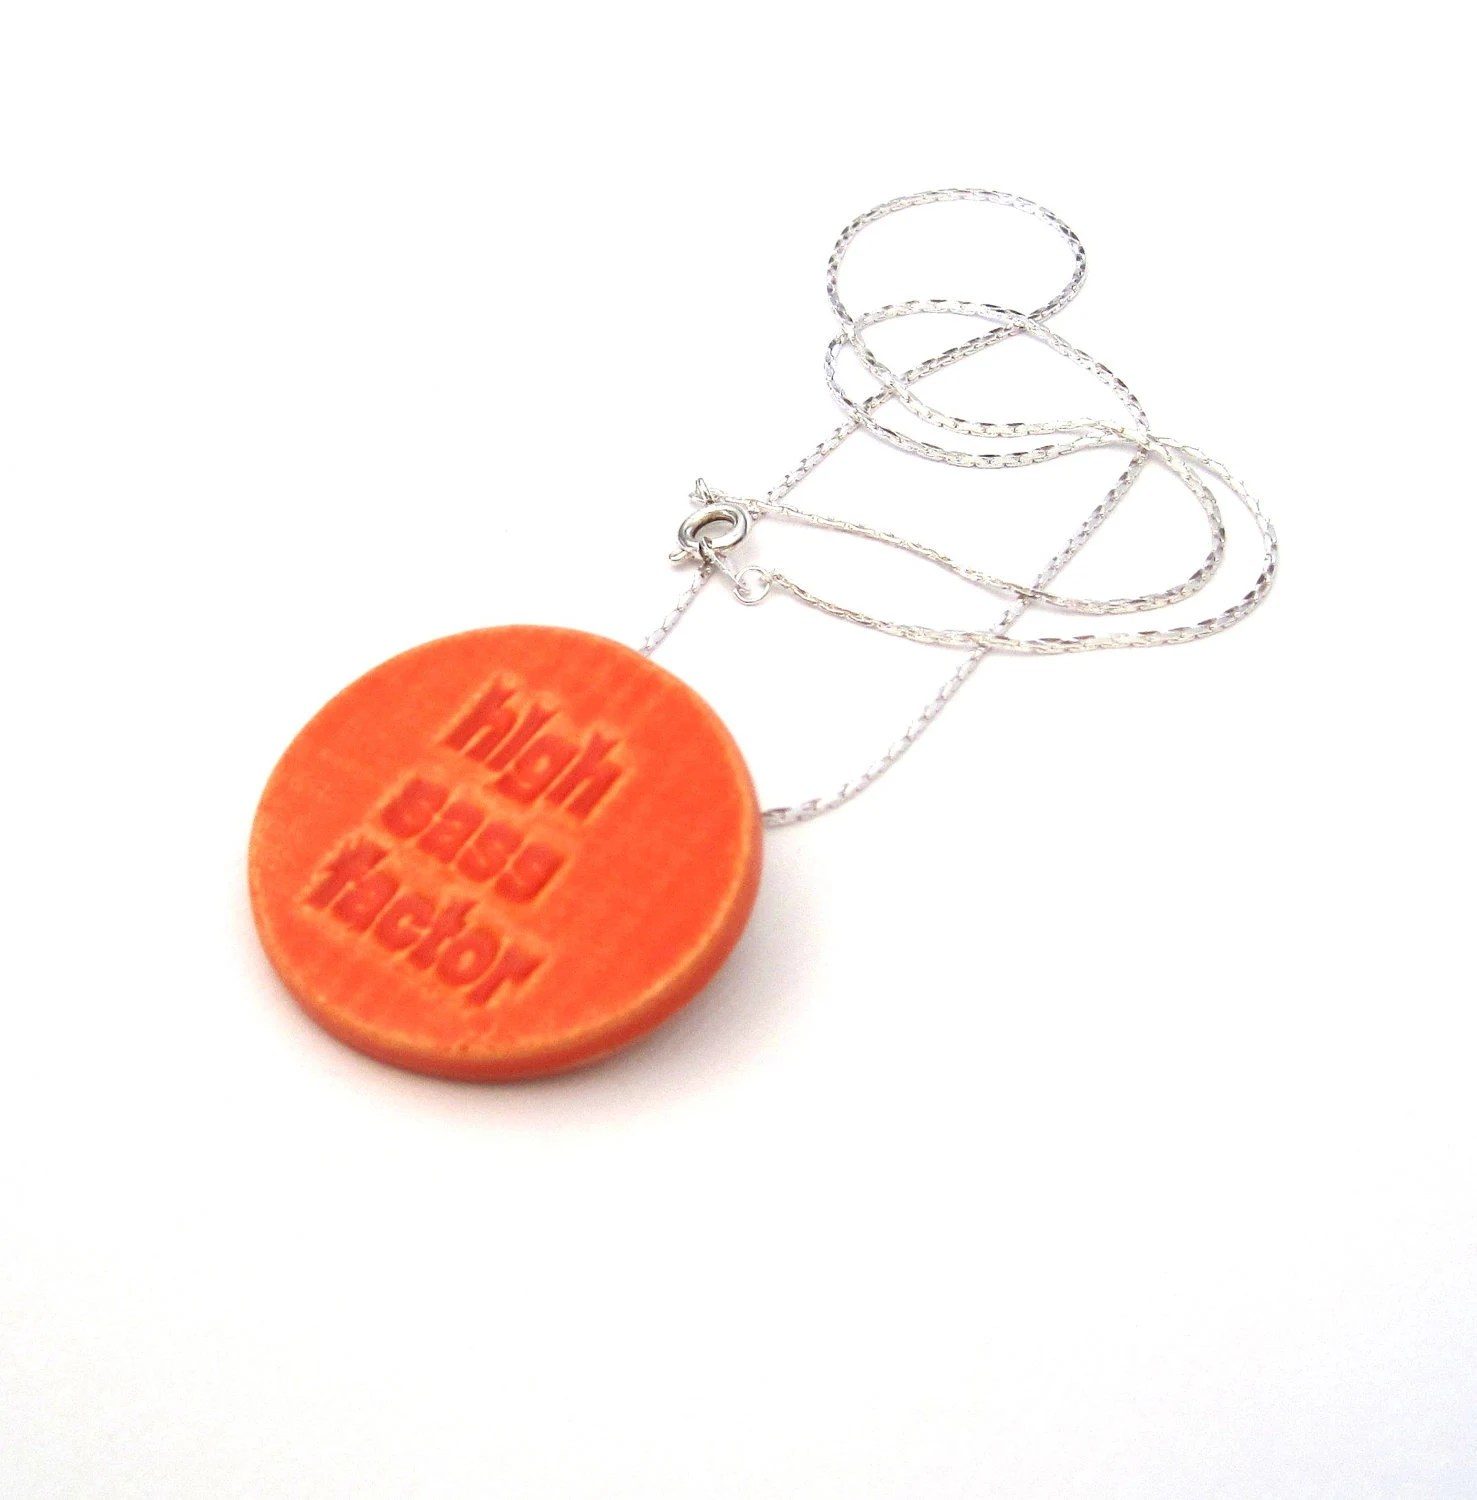 Sass Factor necklace and pin orange - SassyBelleWares